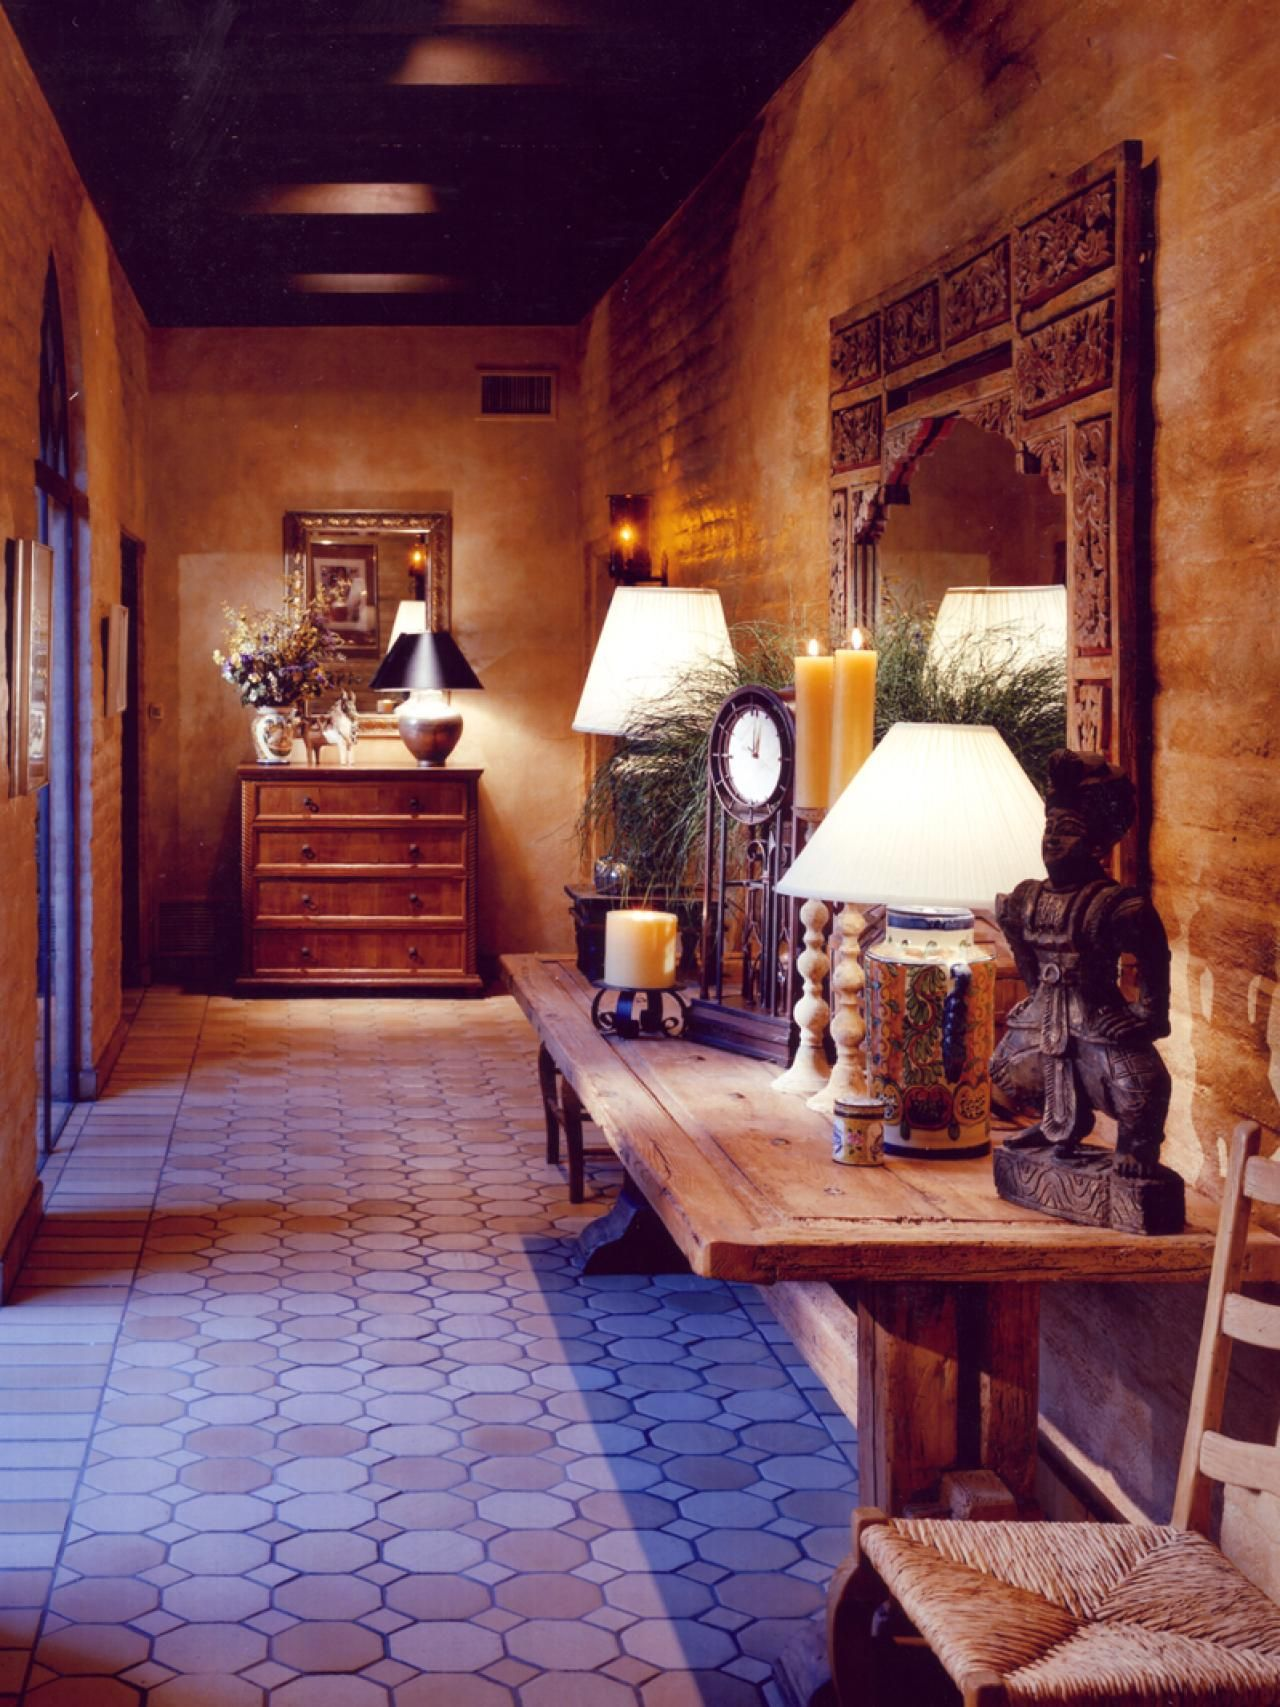 spice up your casa, spanish-style | spanish style interiors and